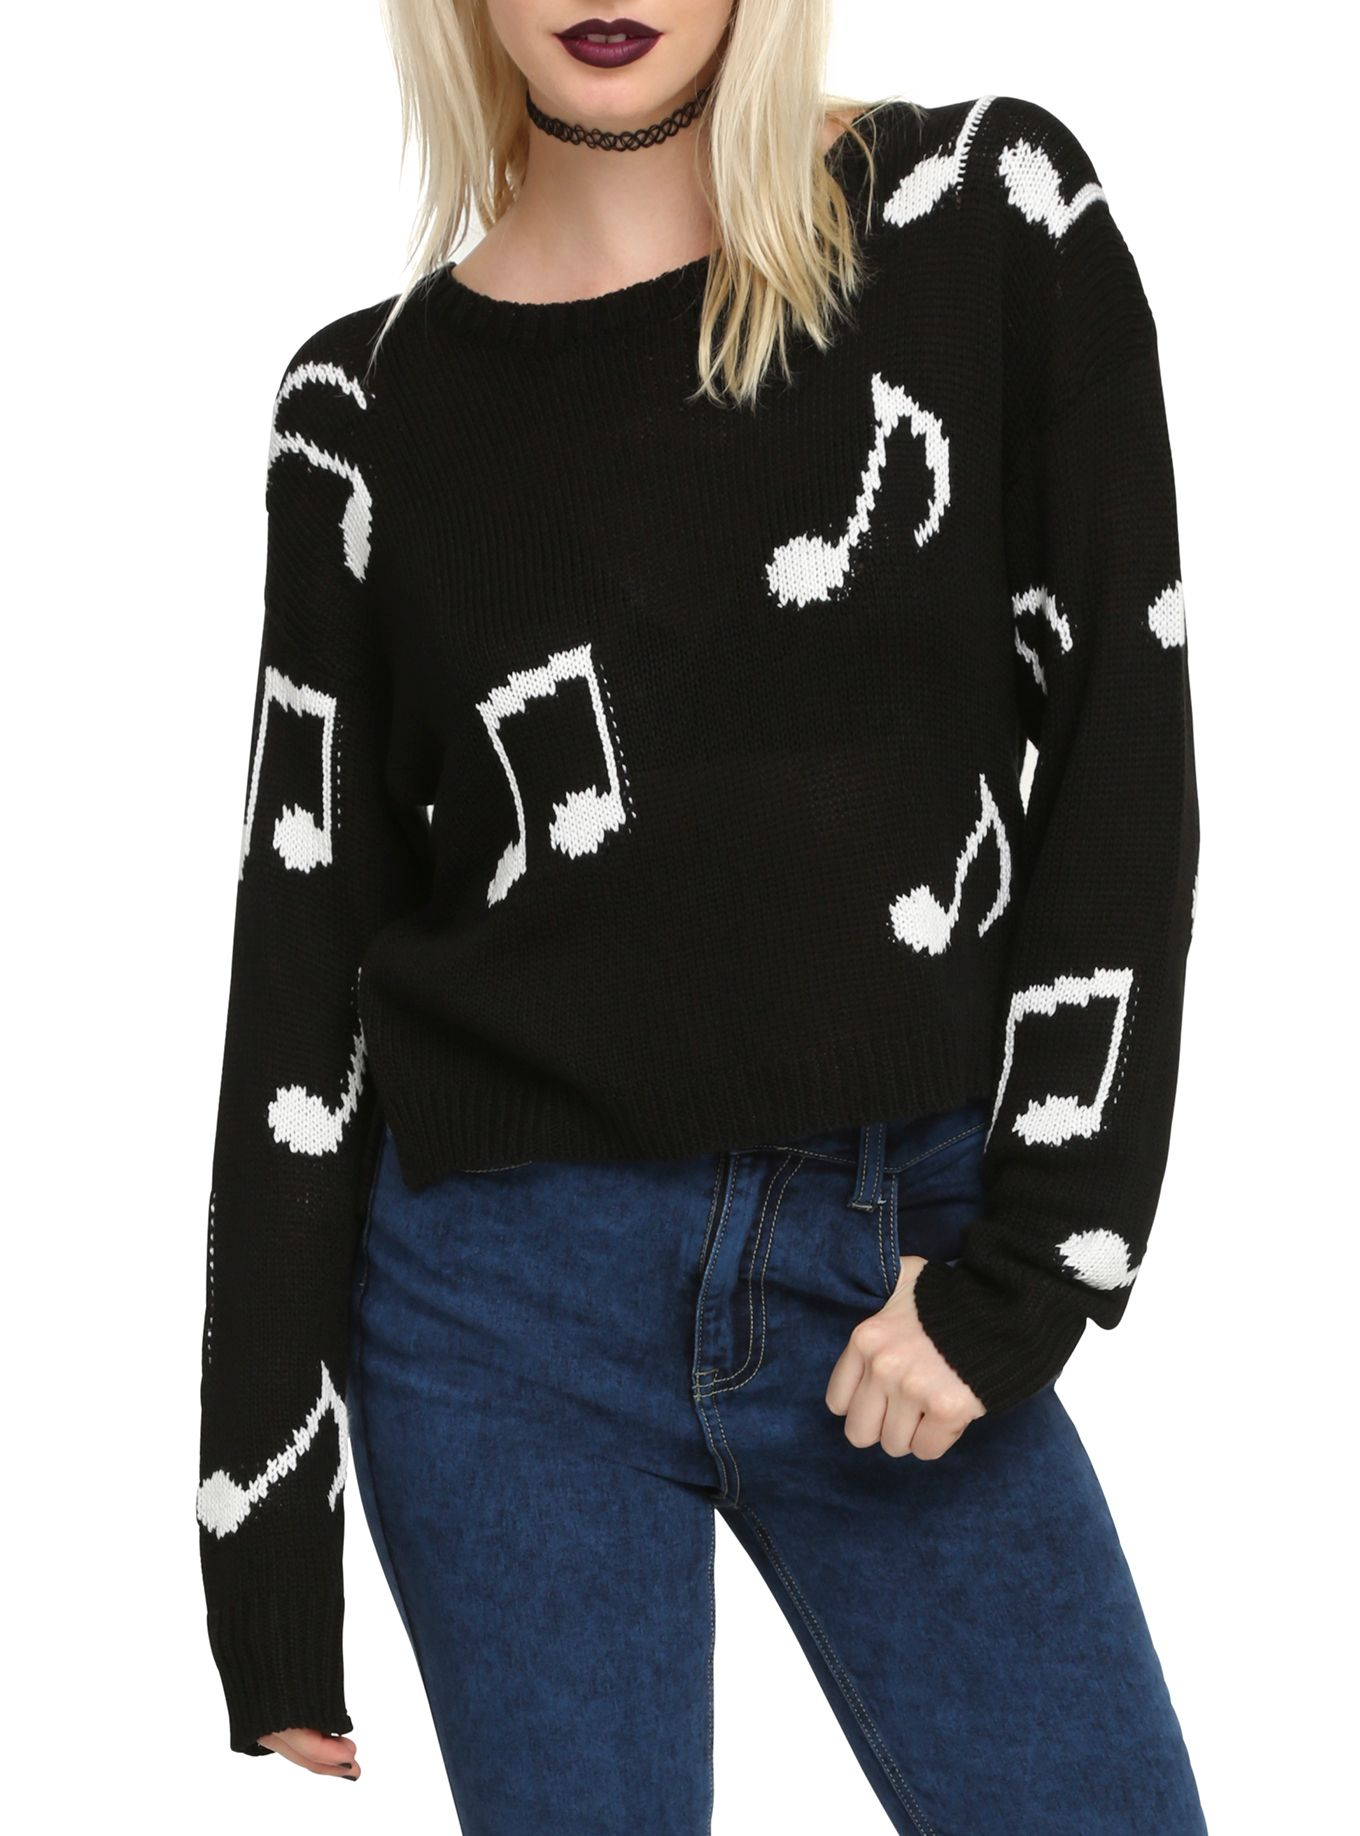 Black & White Music Note Girls Sweater | Note, Clothes and Hot topic